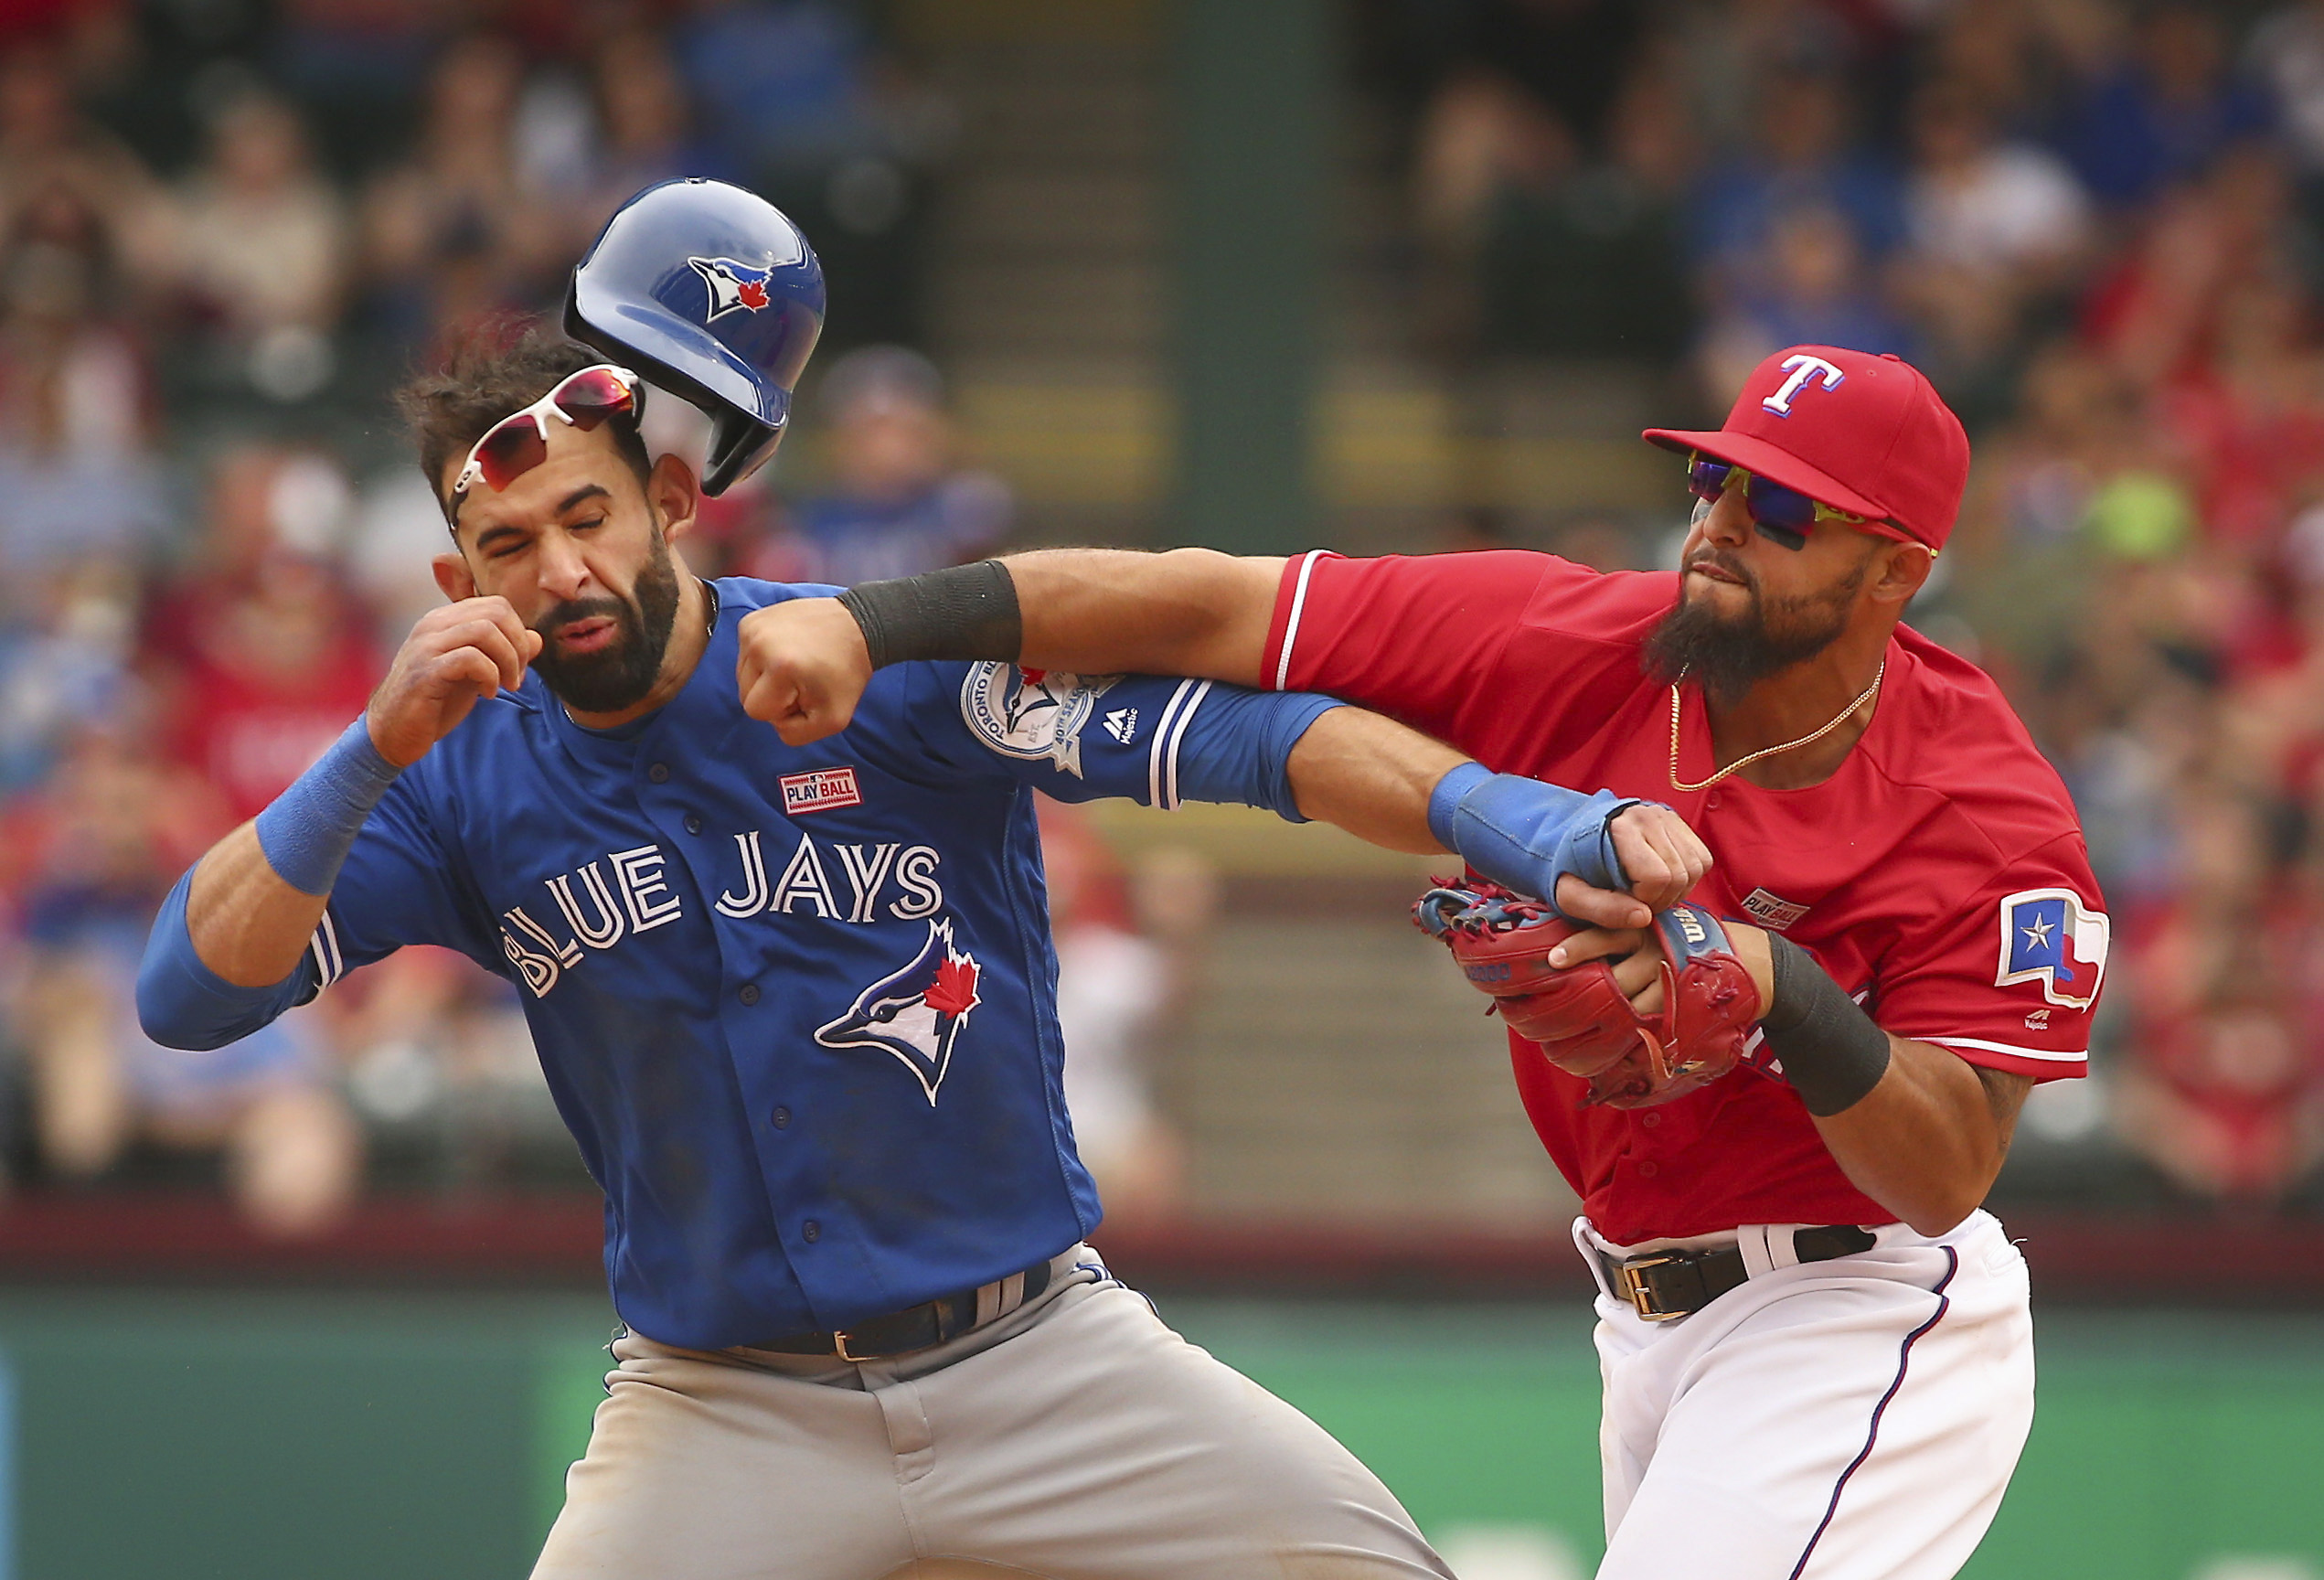 Toronto Blue Jays Jose Bautista (19) gets hit by Texas Rangers second baseman Rougned Odor (12) after Bautista slid into second in the eighth inning of a baseball game at Globe Life Park in Arlington, Texas, Sunday May 15, 2016. (Richard W. Rodriguez/Star